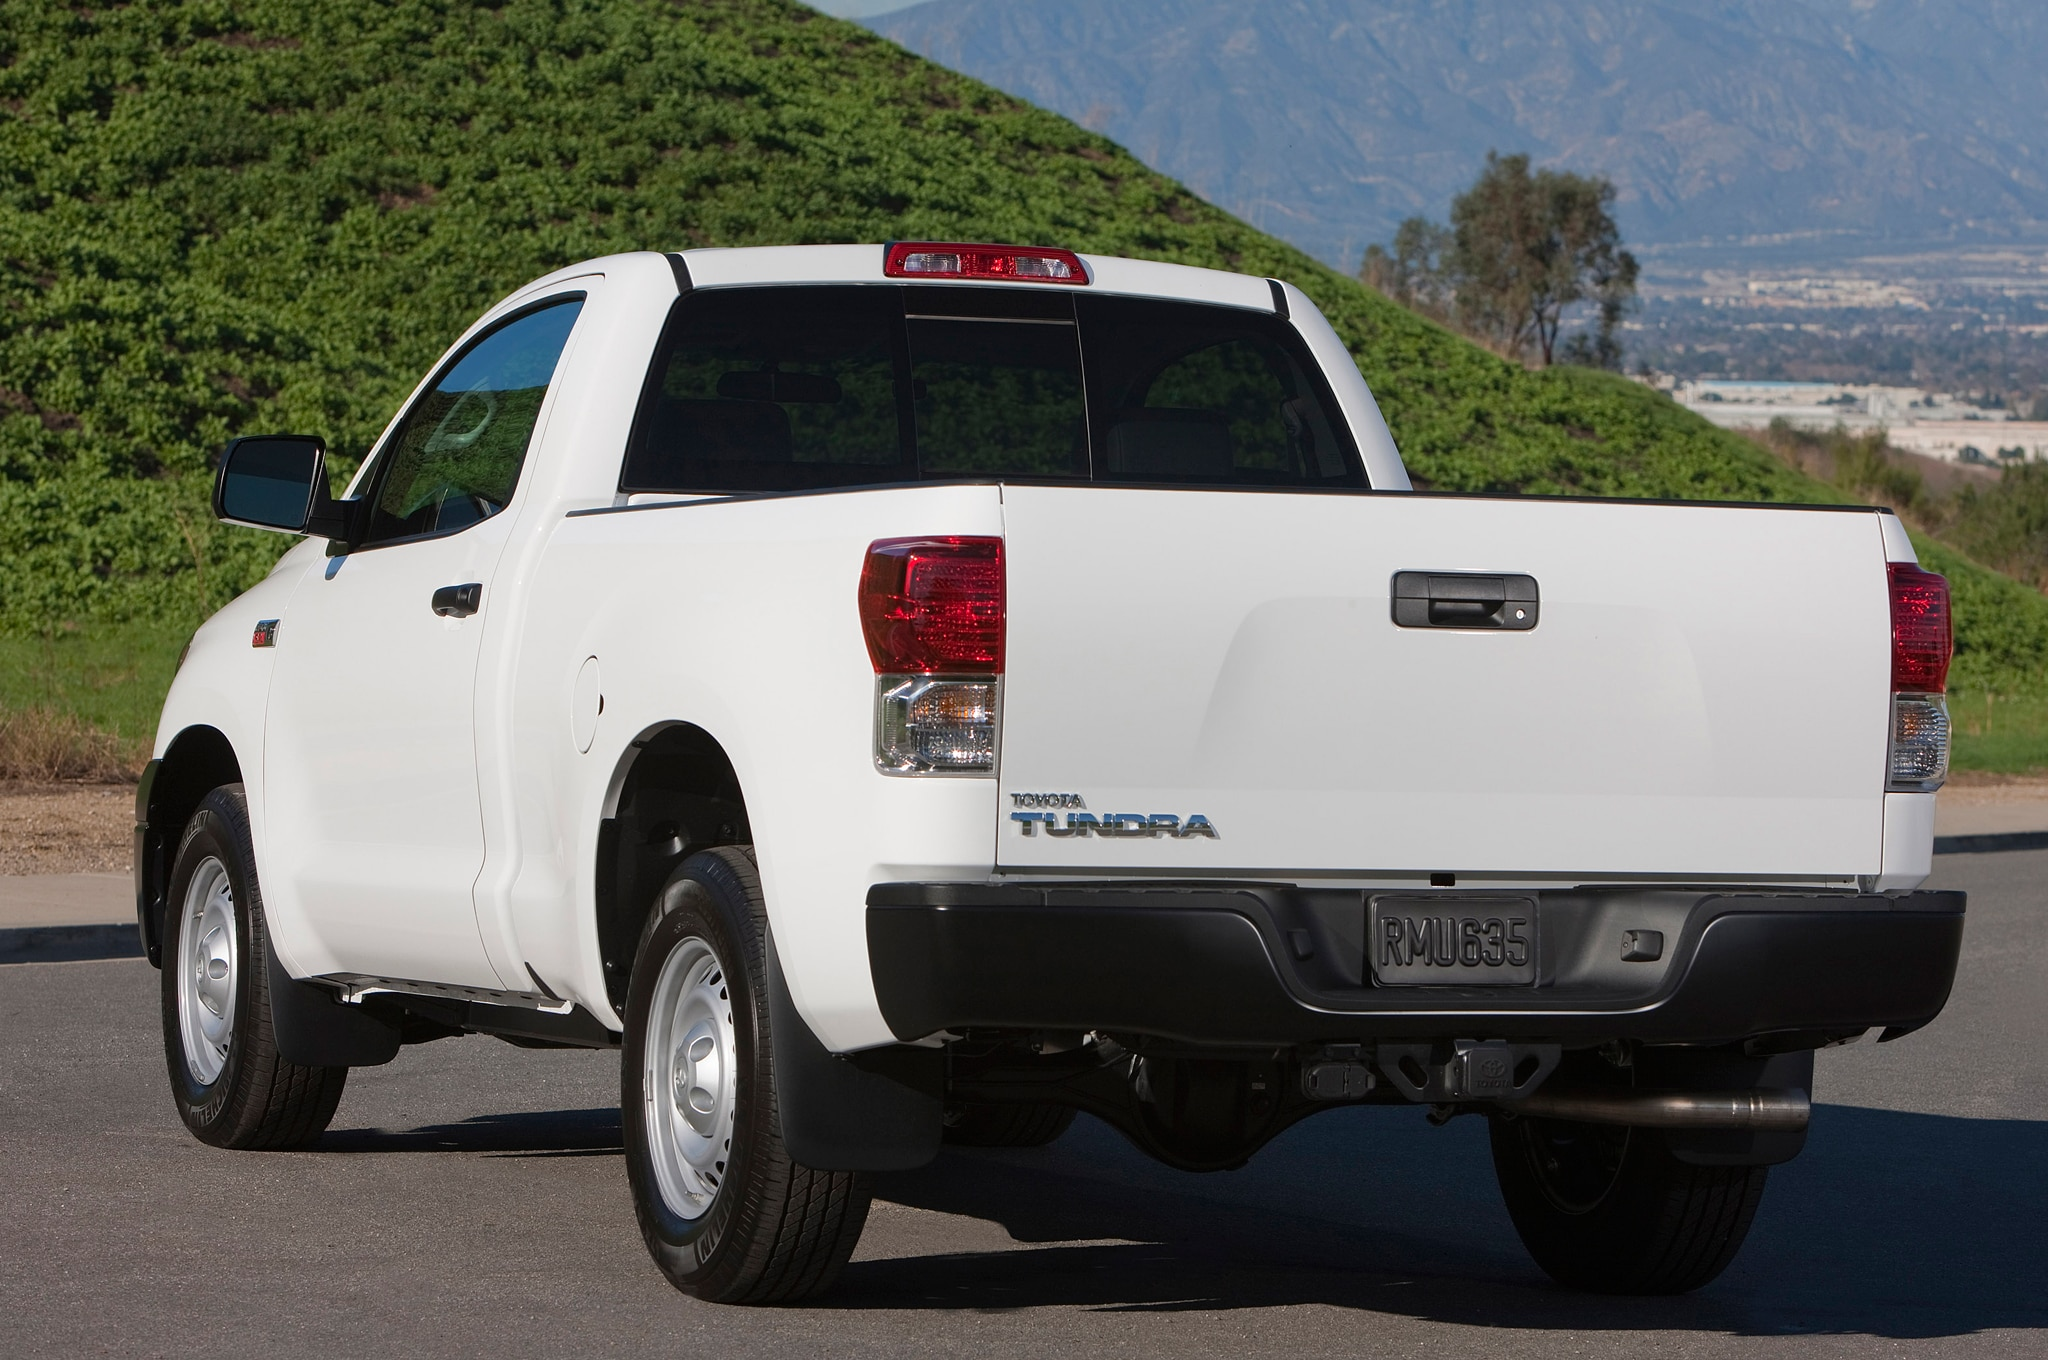 2013 Toyota Tundra Double Cab 4x4 Editors Notebook HD Wallpapers Download free images and photos [musssic.tk]